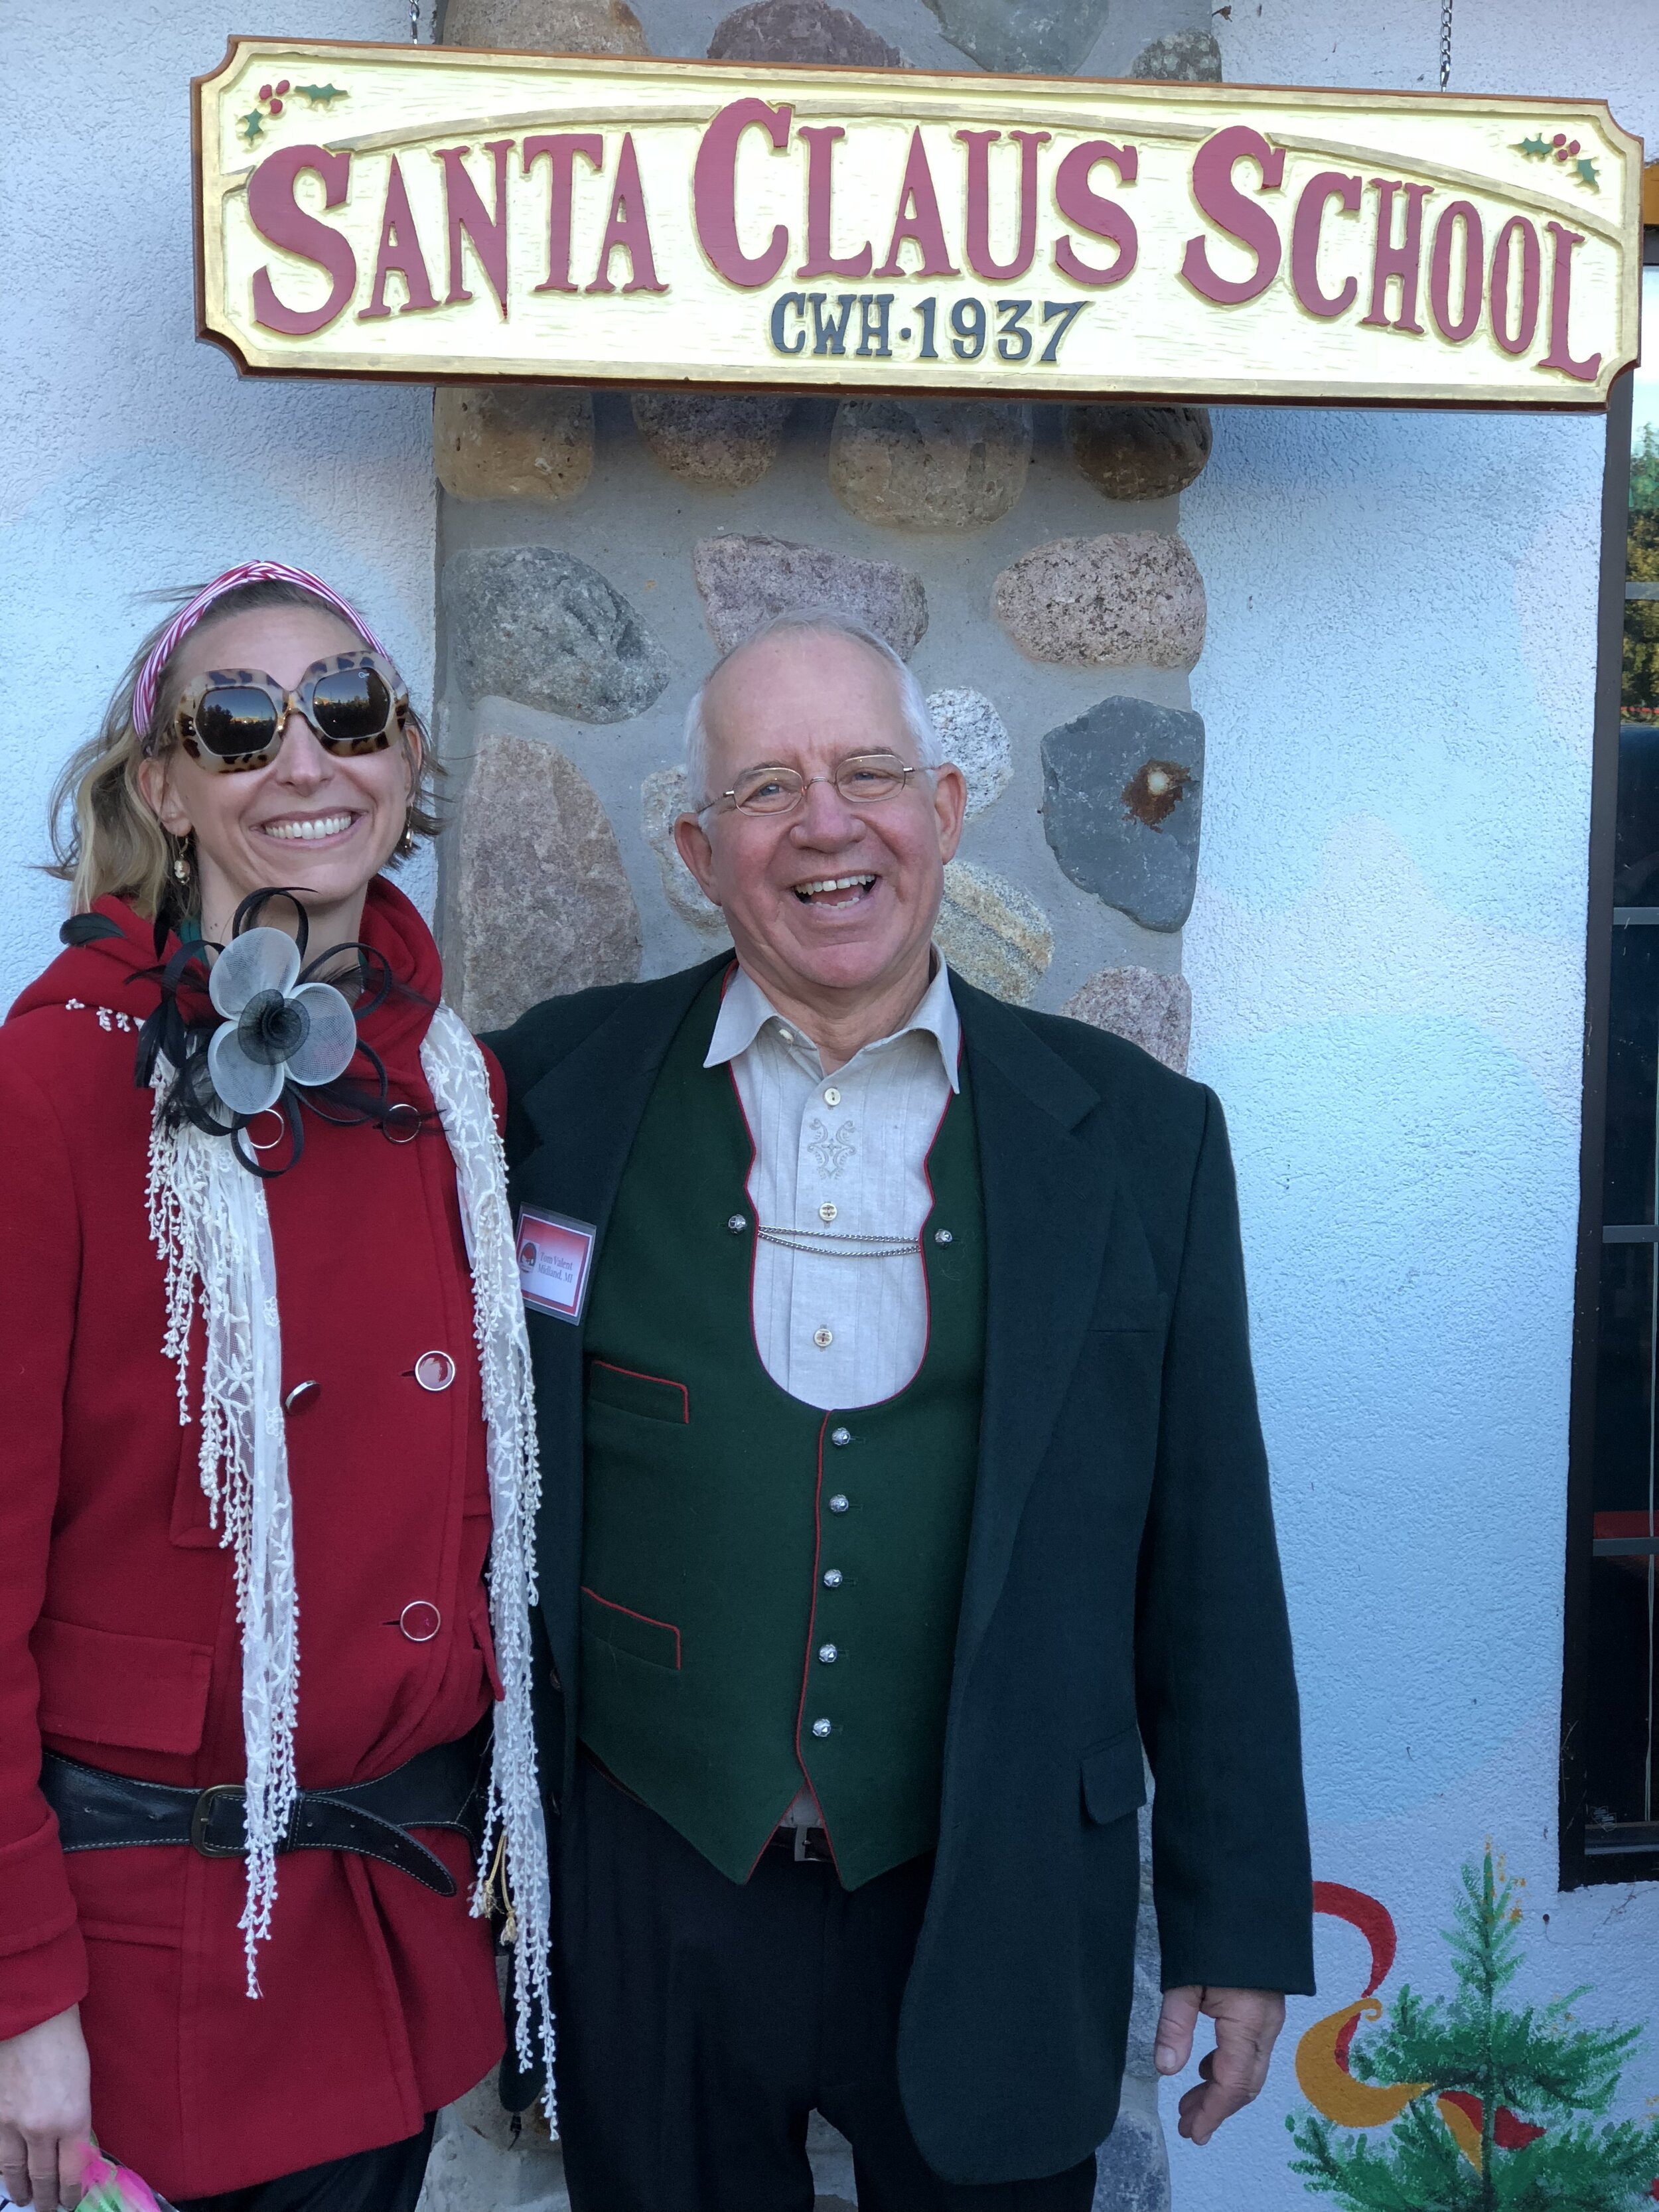 With Tom Valent of Charles W. Howard Santa Claus School.